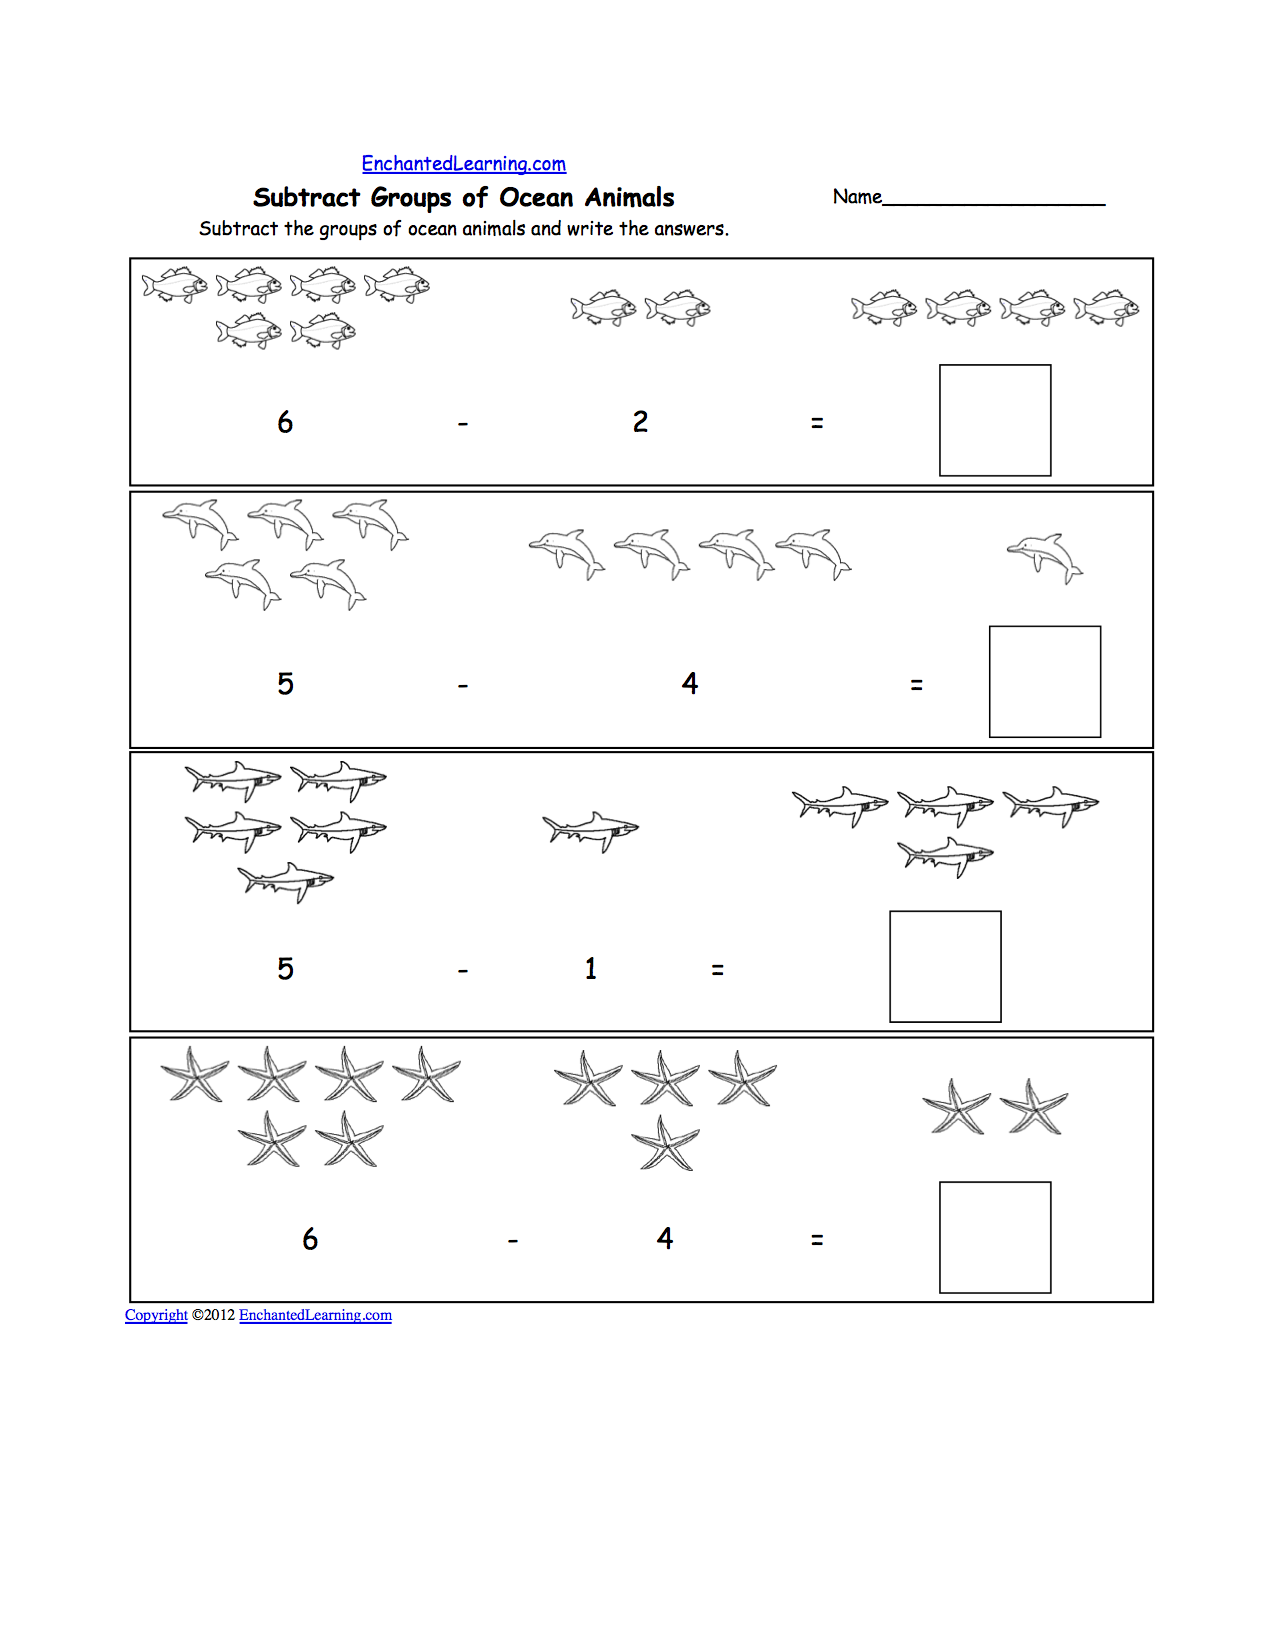 worksheet Fish Worksheets For Preschoolers oceans and seas at enchantedlearning com